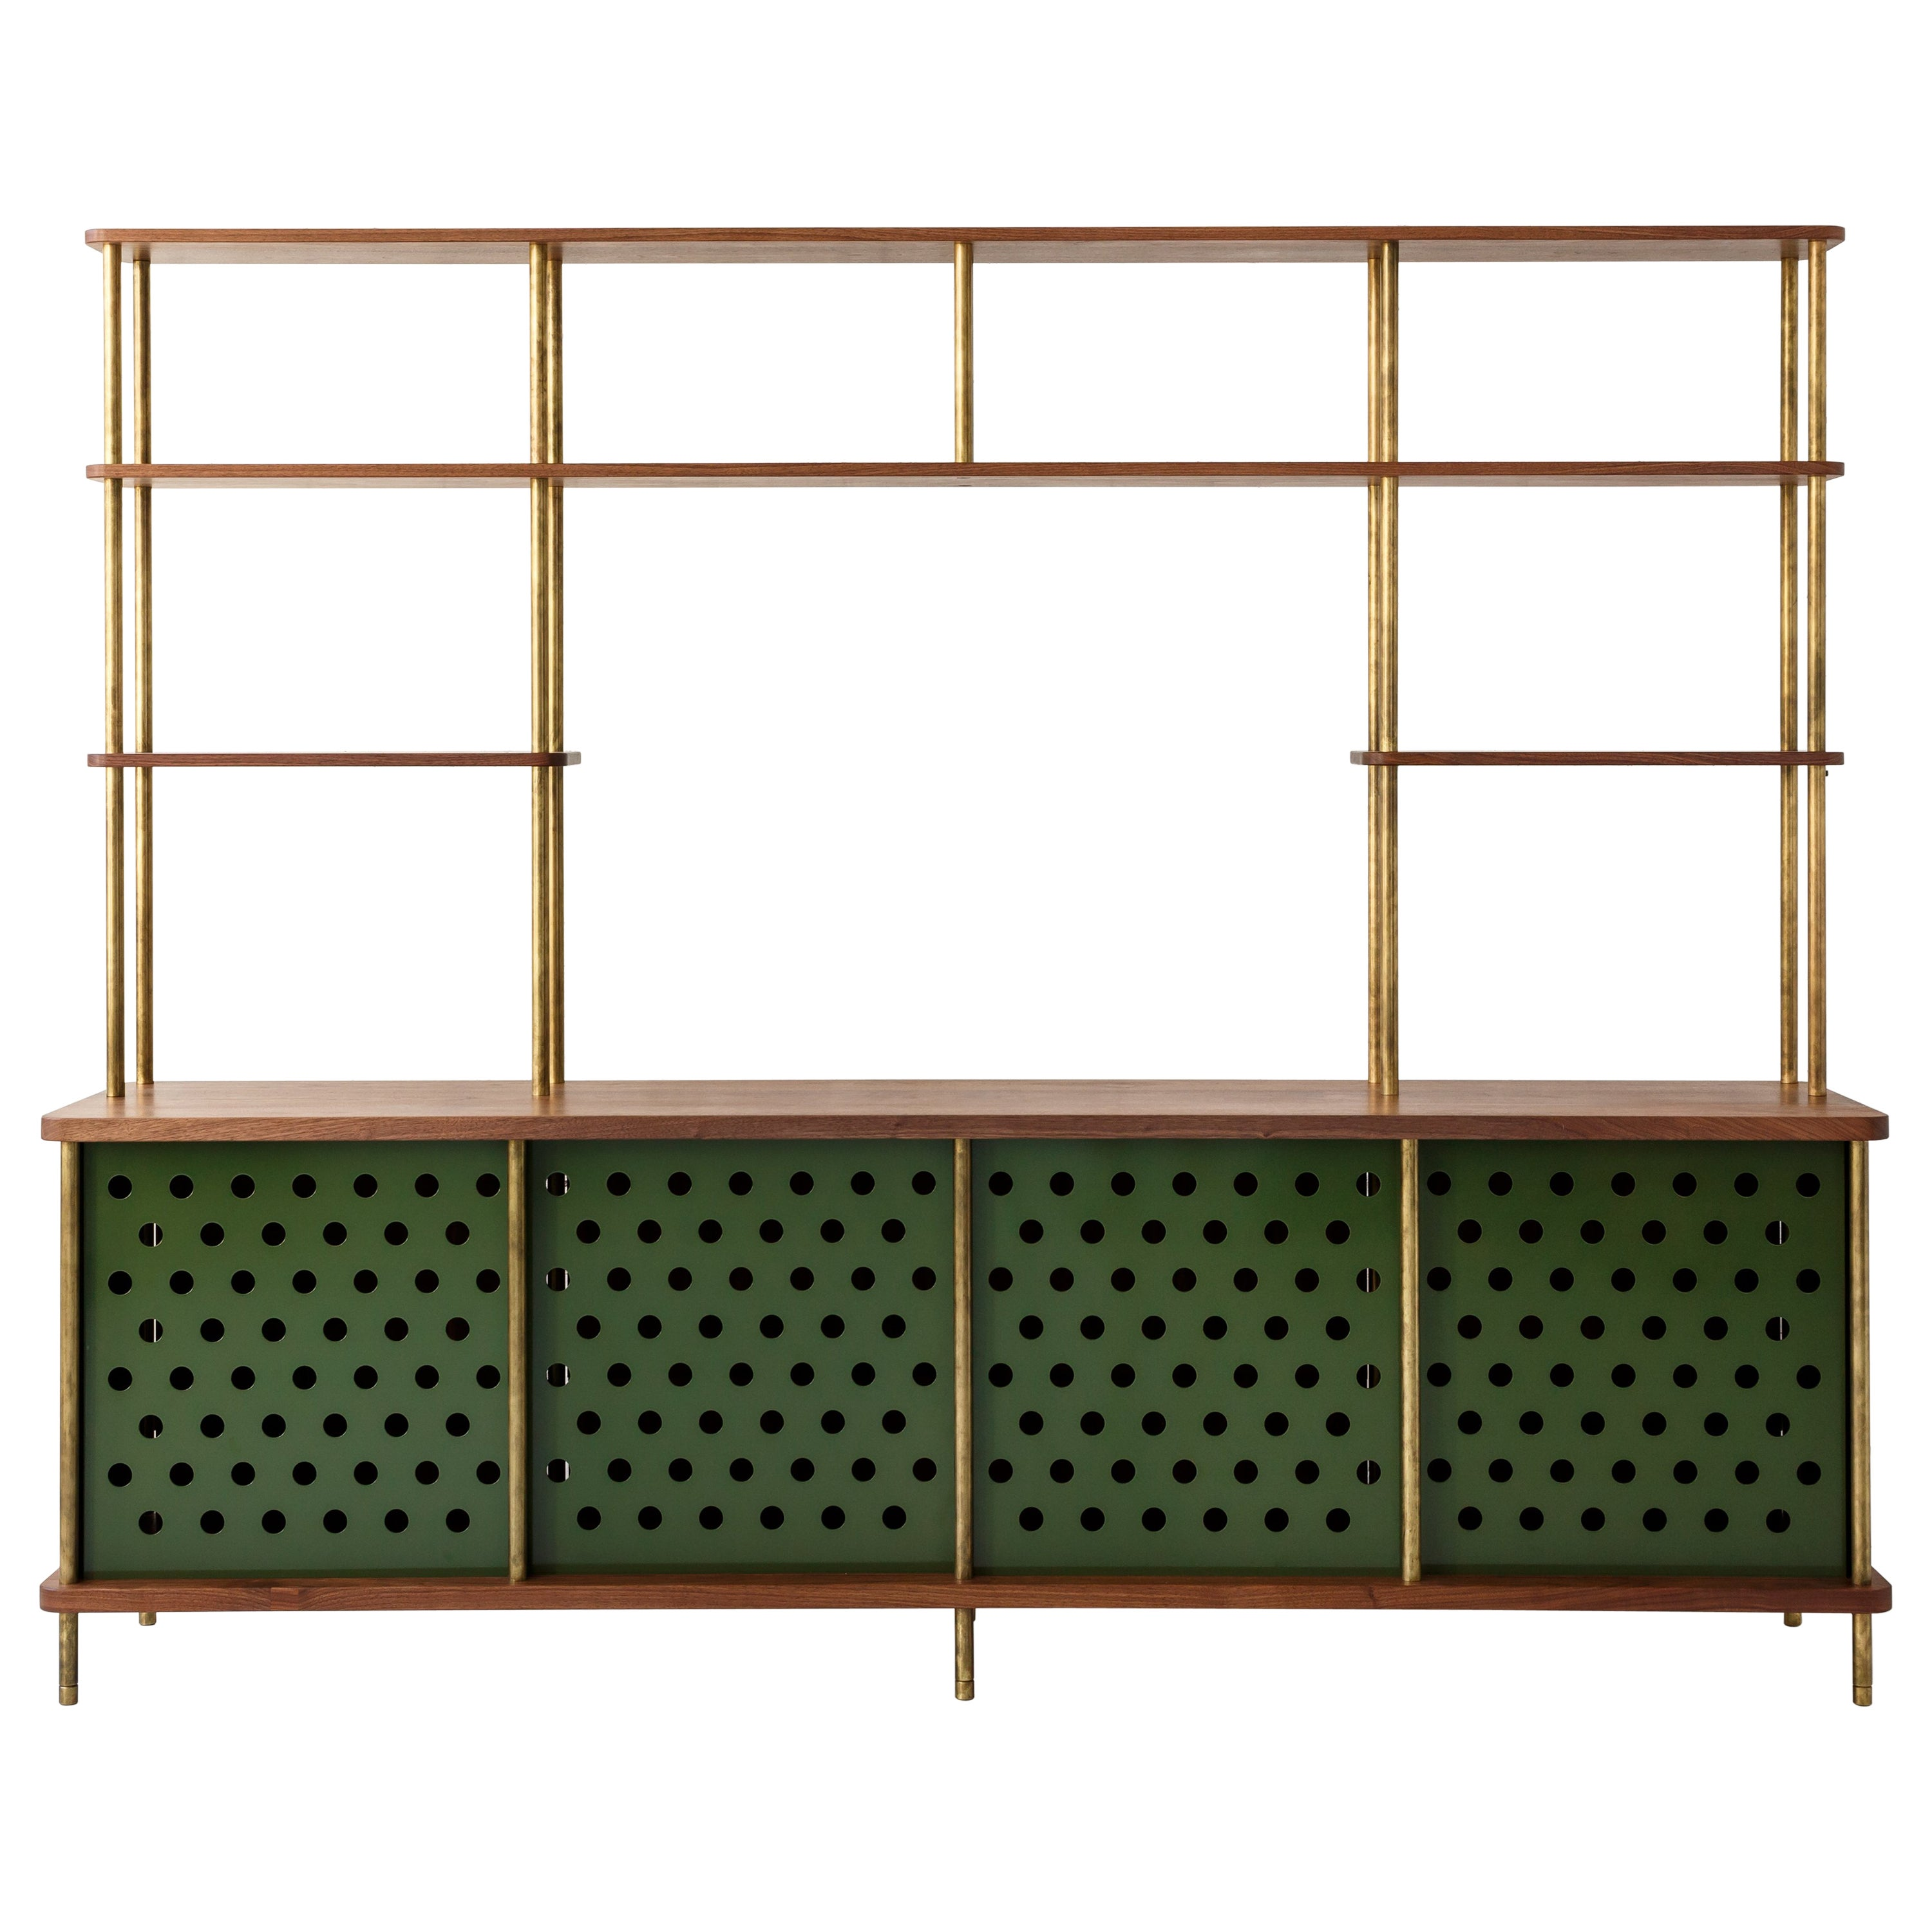 Contemporary 4 Door Strata Credenza in Walnut Wood and Brass by Fort Standard